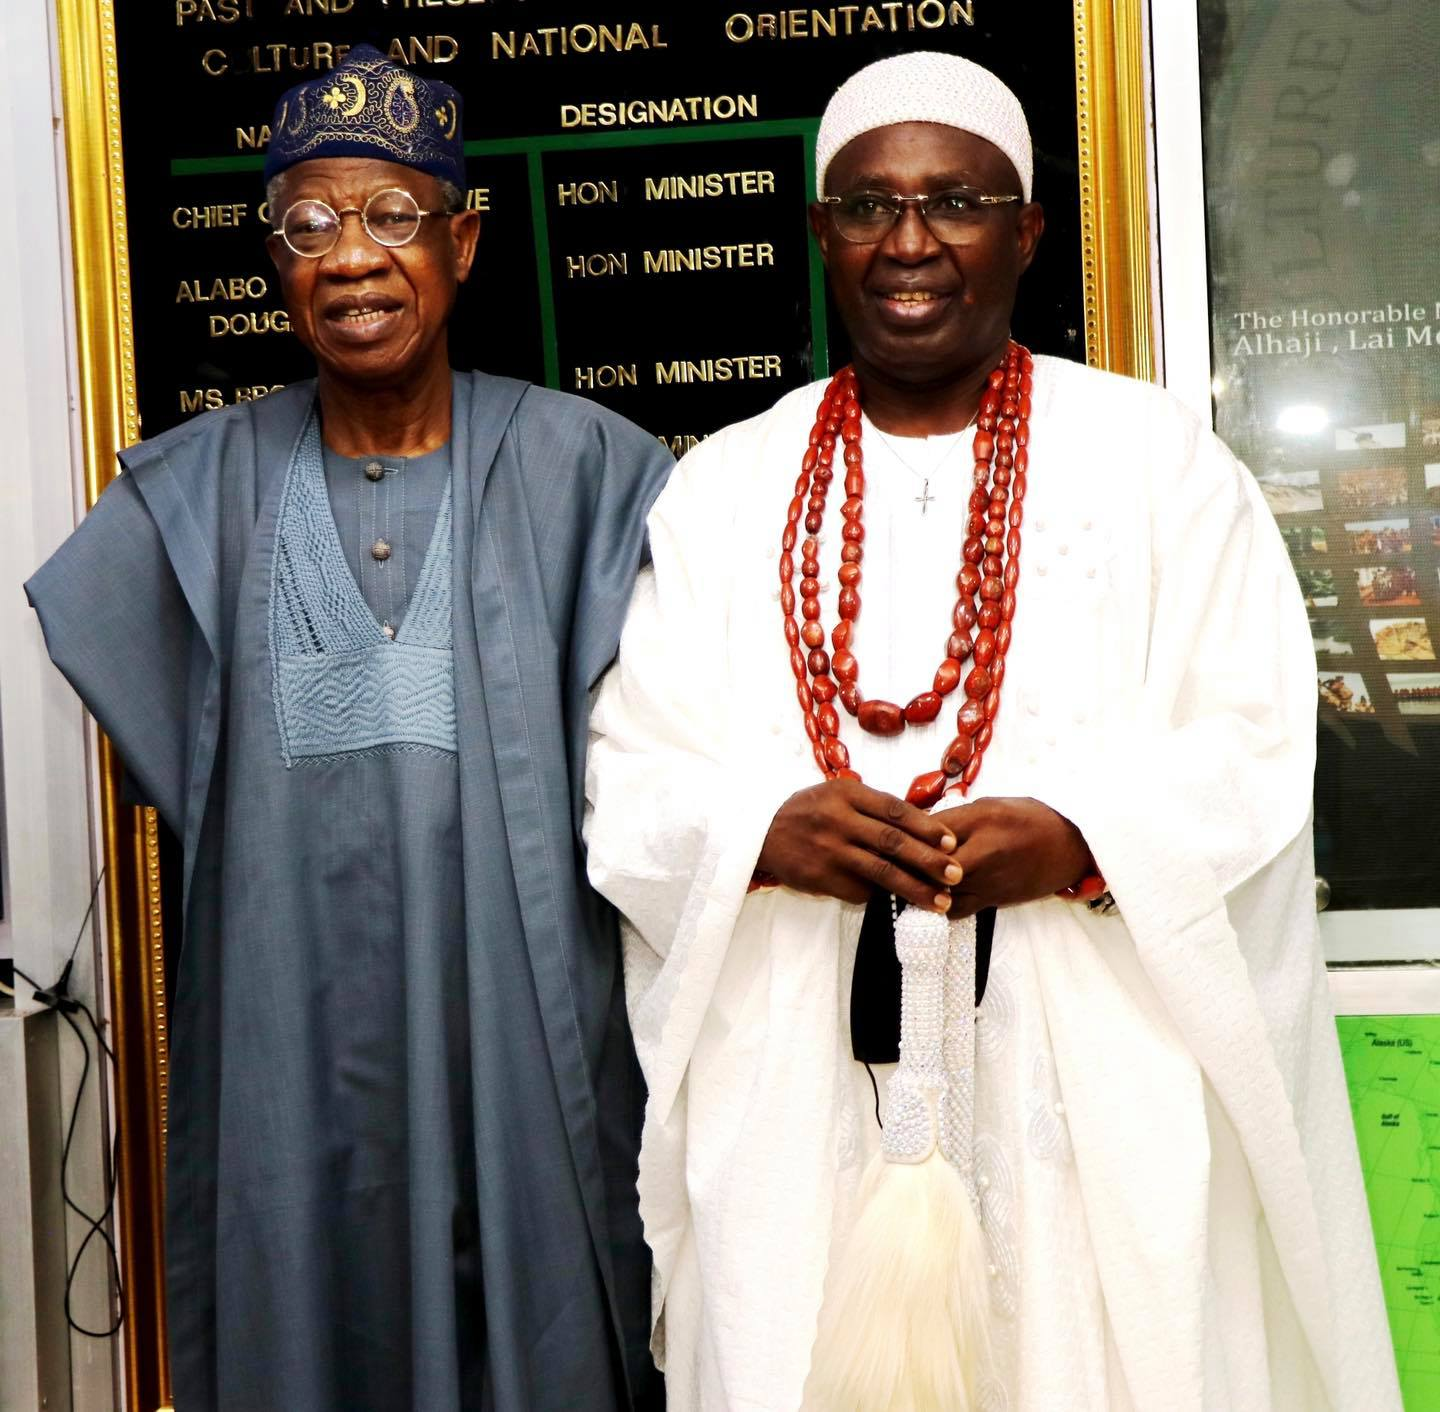 Minister of Information and Culture, Alhaji Lai Mohammed, and the Oluyin of Iyin-Ekiti, Oba Adeola Adeniyi Ajakaiye, during a courtesy visit to the Minister by the Royal Father in Abuja on Thursday.